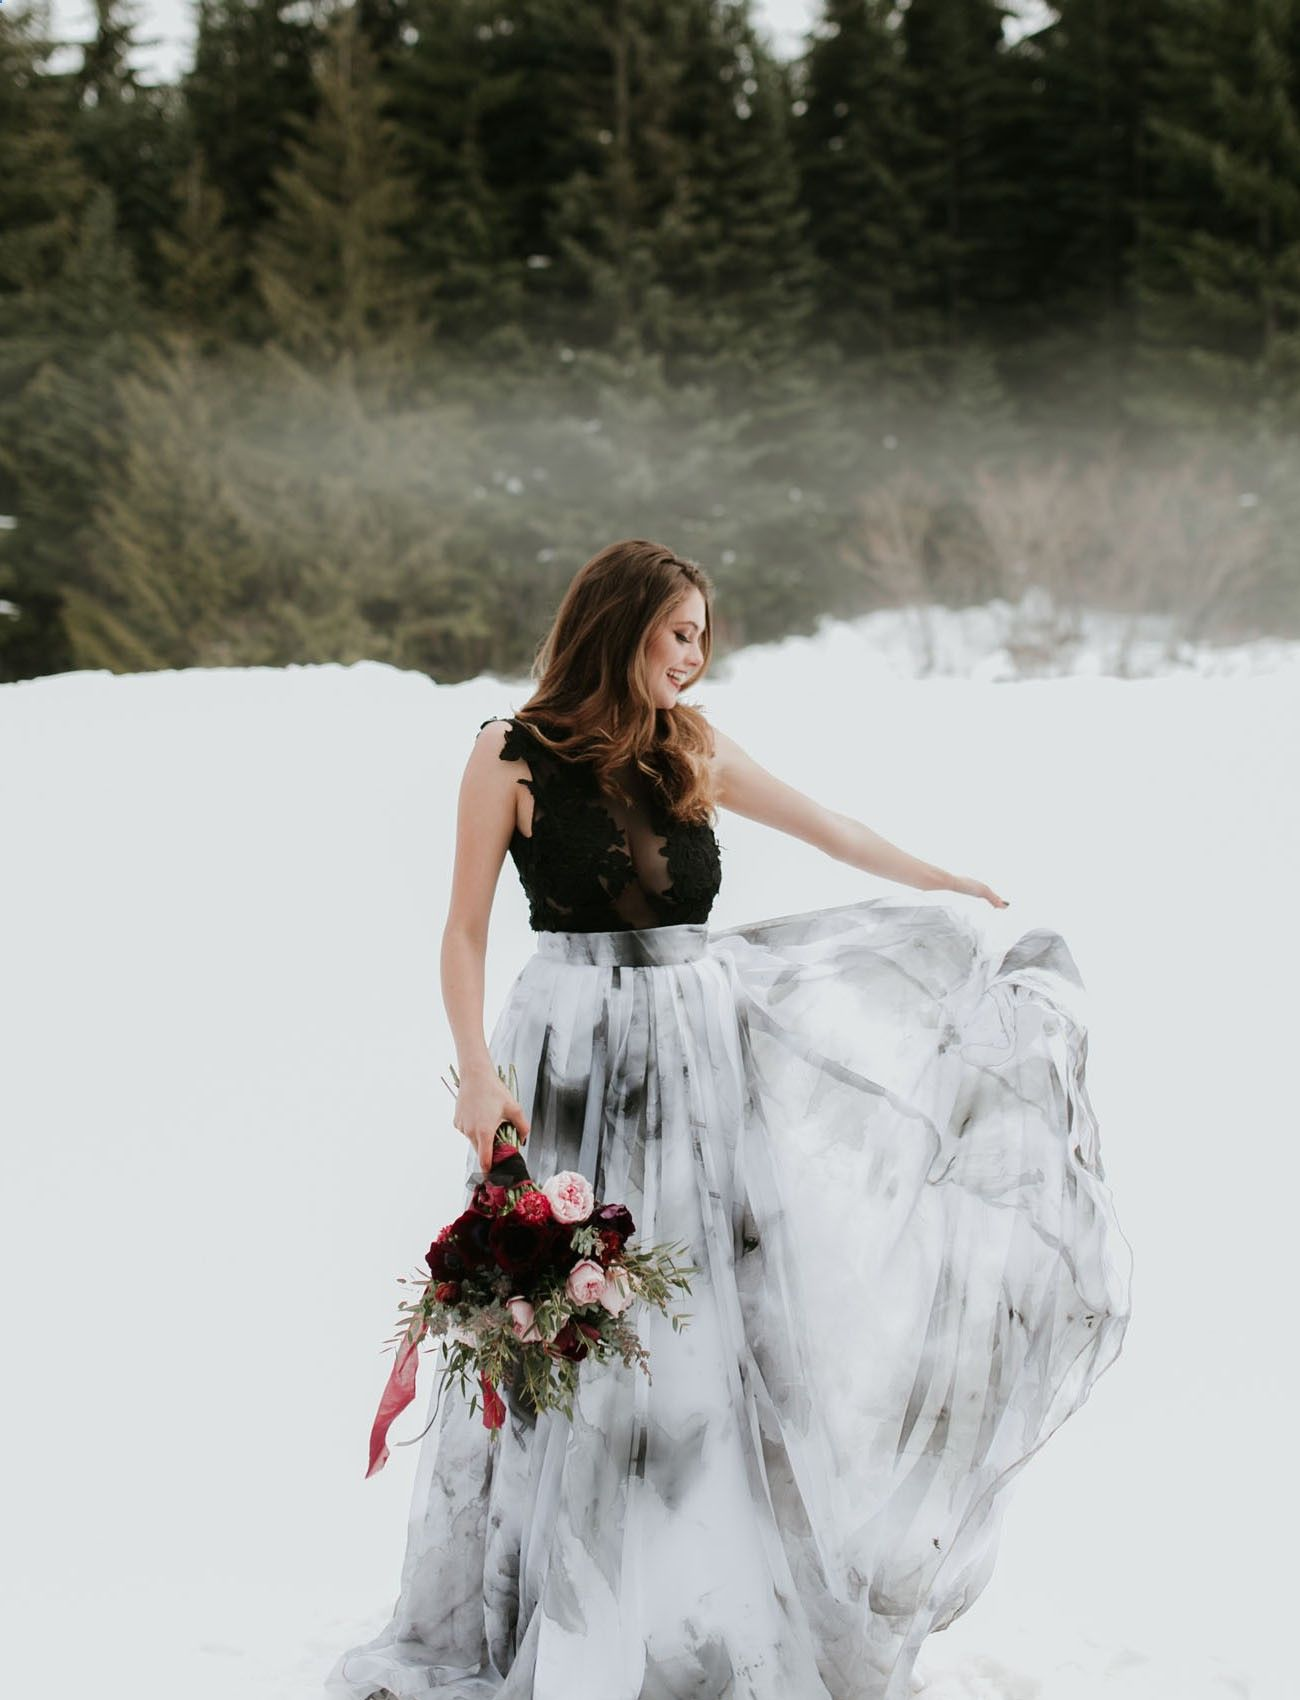 33 Black Wedding Dress For Every Bride To Stand Out Rusticwedding